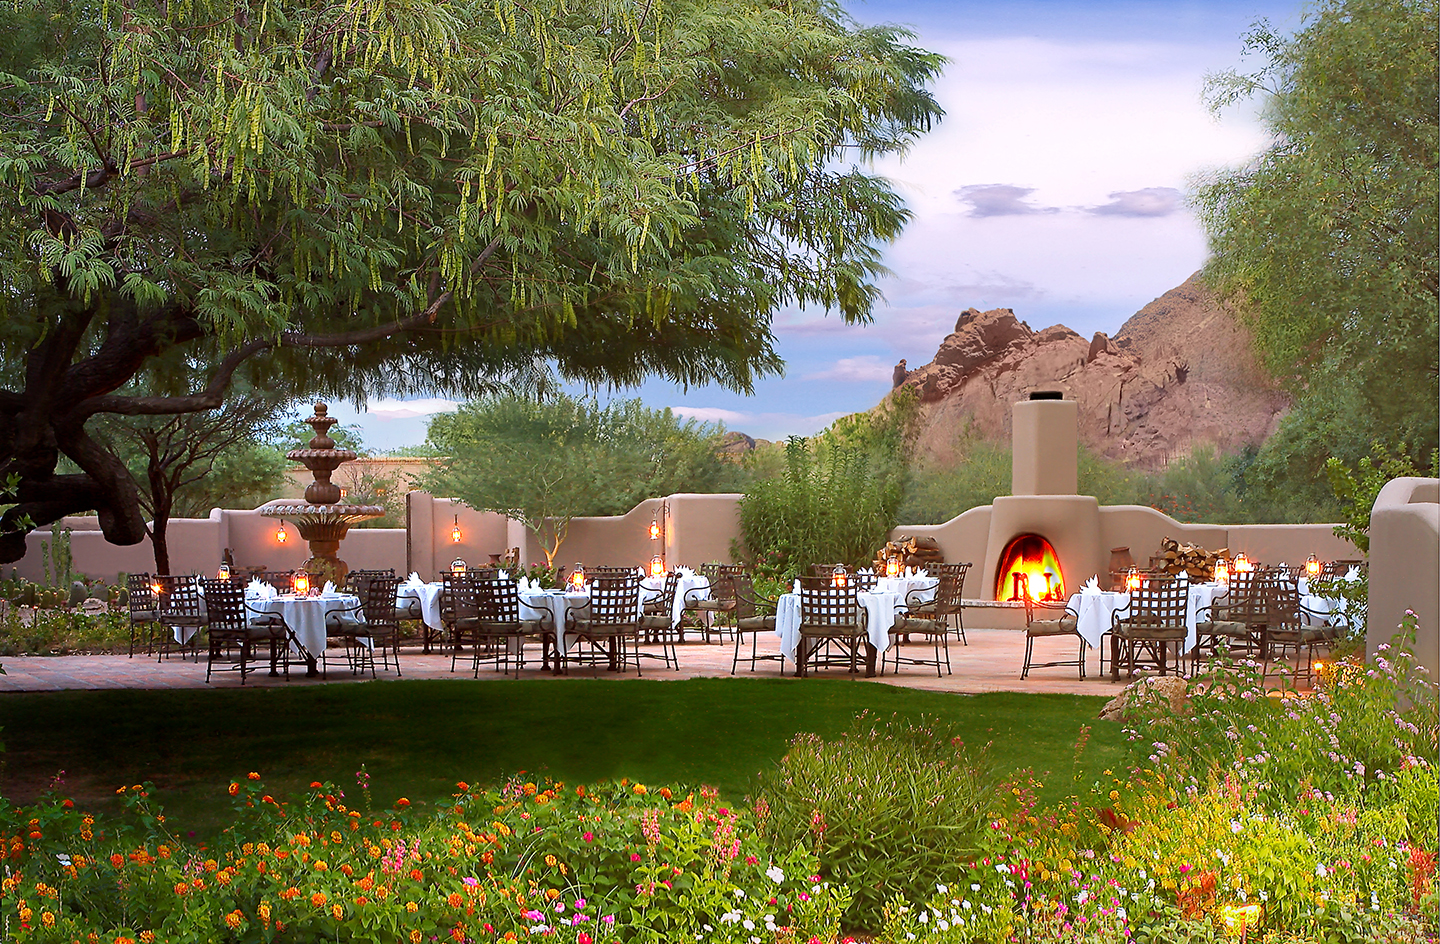 A photo looking out over a lush flower garden and lawn, past a tree, to a patio with tables set up beside a Pueblo-style fireplace with a fire roaring.